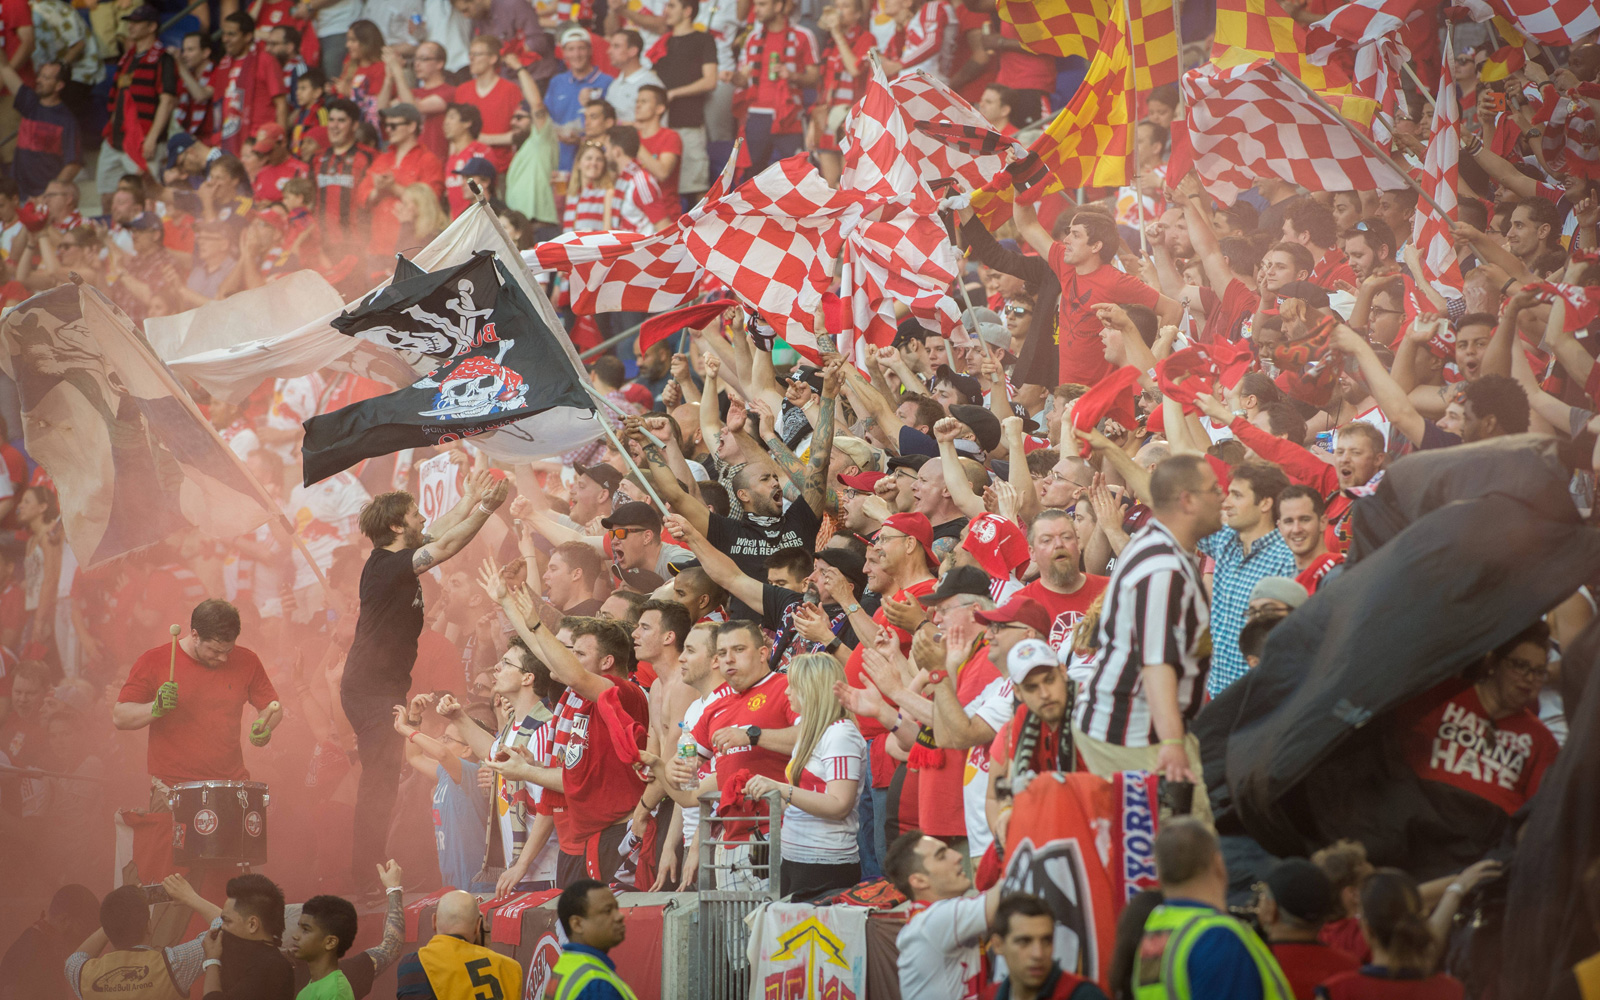 Red Bulls fans celebrate a goal from Bradley Wright-Phillips in the club's first match against NYCFC.